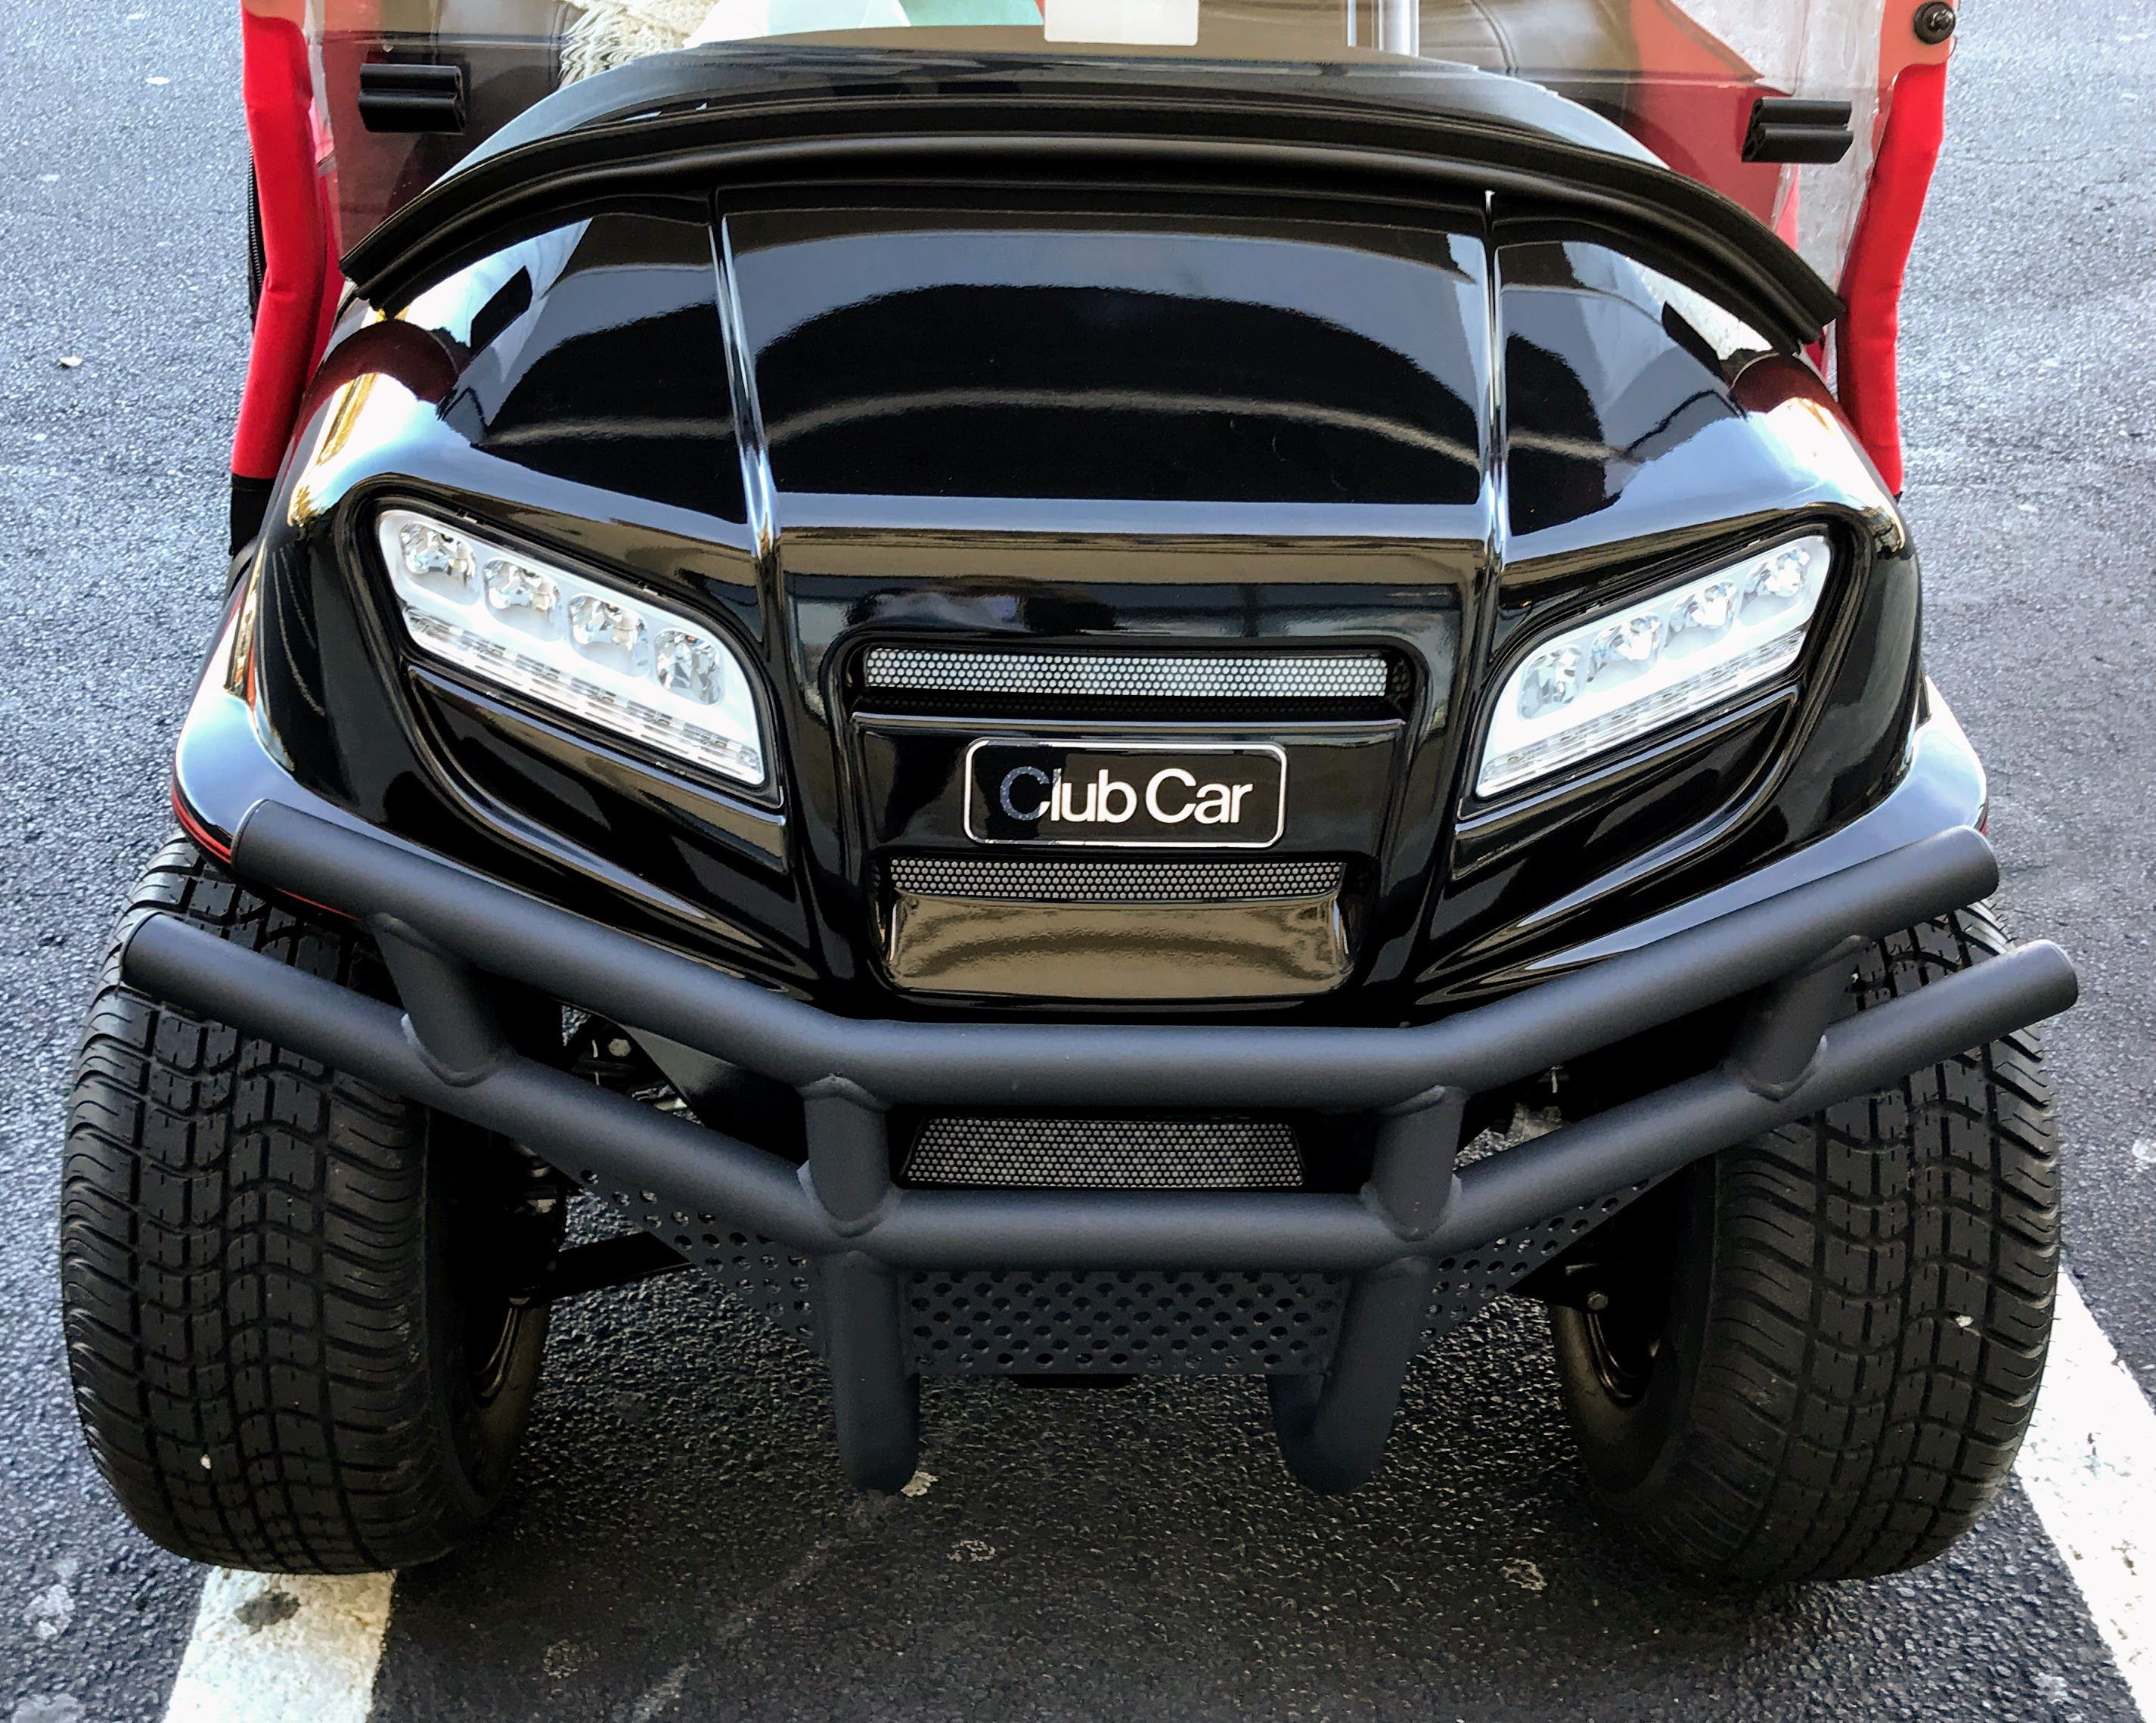 Club Car Accessories >> Club Car Golf Cart Accessories For Cold Customization And Comfort